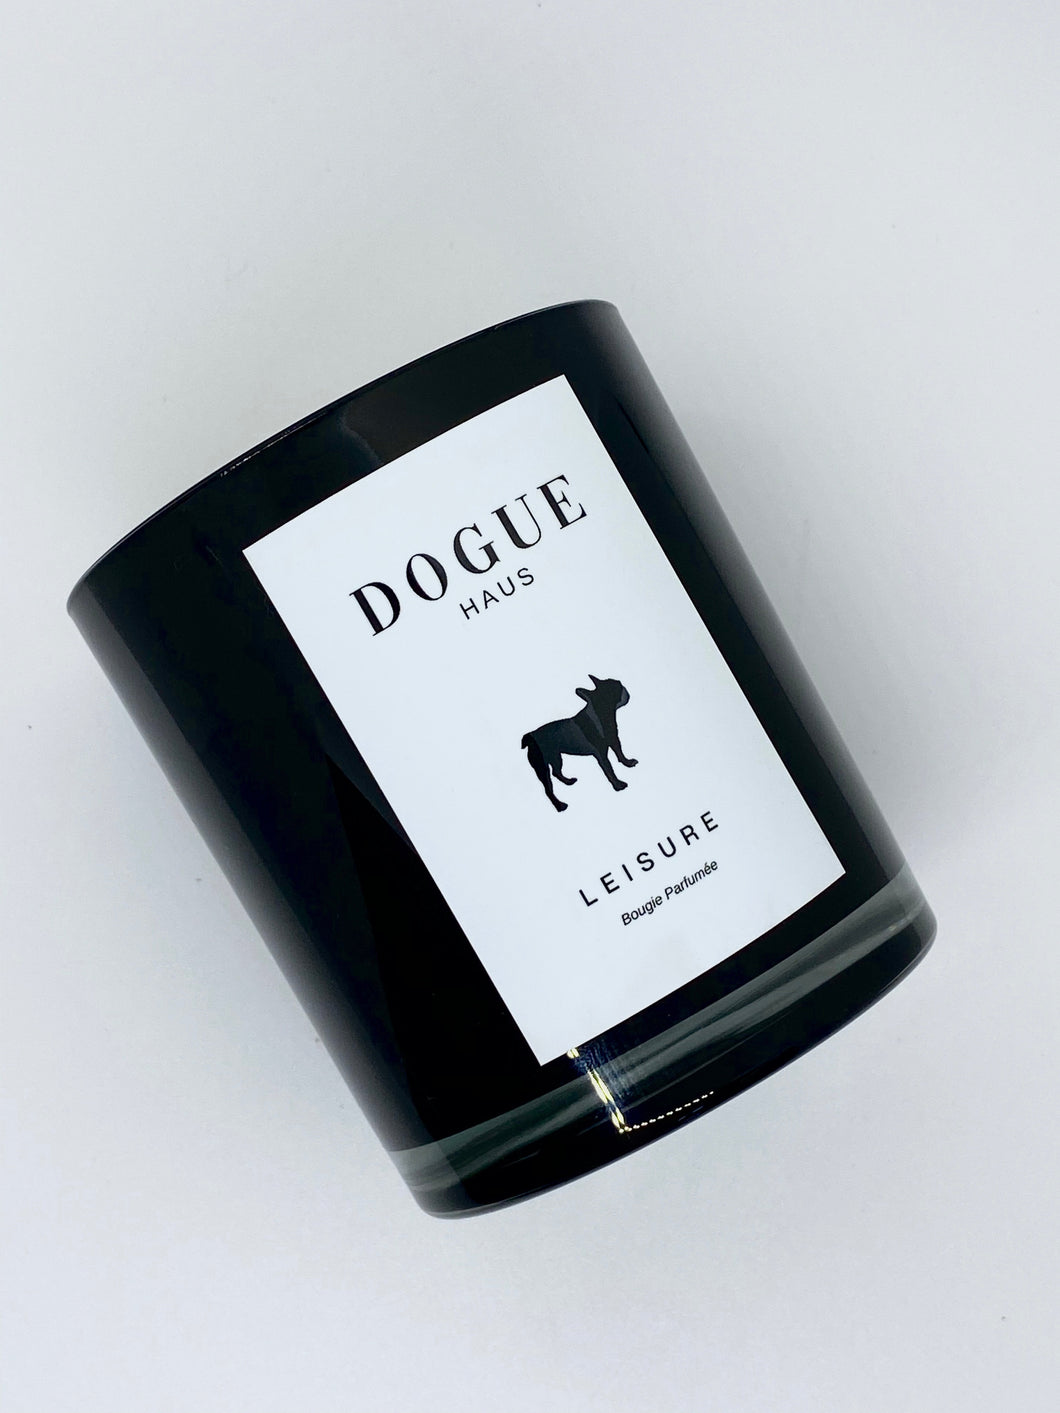 Dogue Haus Leisure Candle